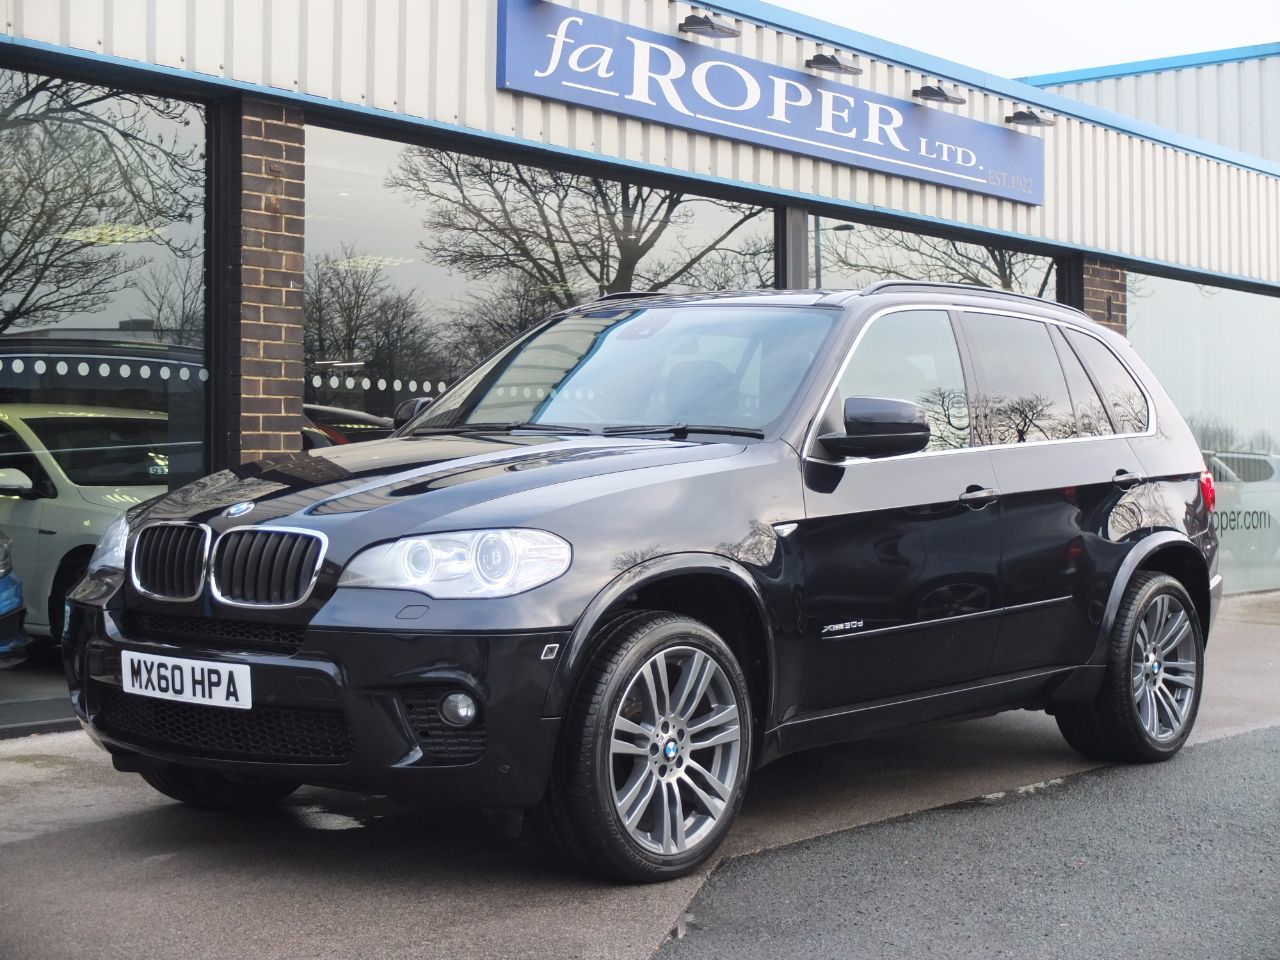 BMW X5 3.0 xDrive30d M Sport Auto Estate Diesel Carbon Black MetallicBMW X5 3.0 xDrive30d M Sport Auto Estate Diesel Carbon Black Metallic at fa Roper Ltd Bradford